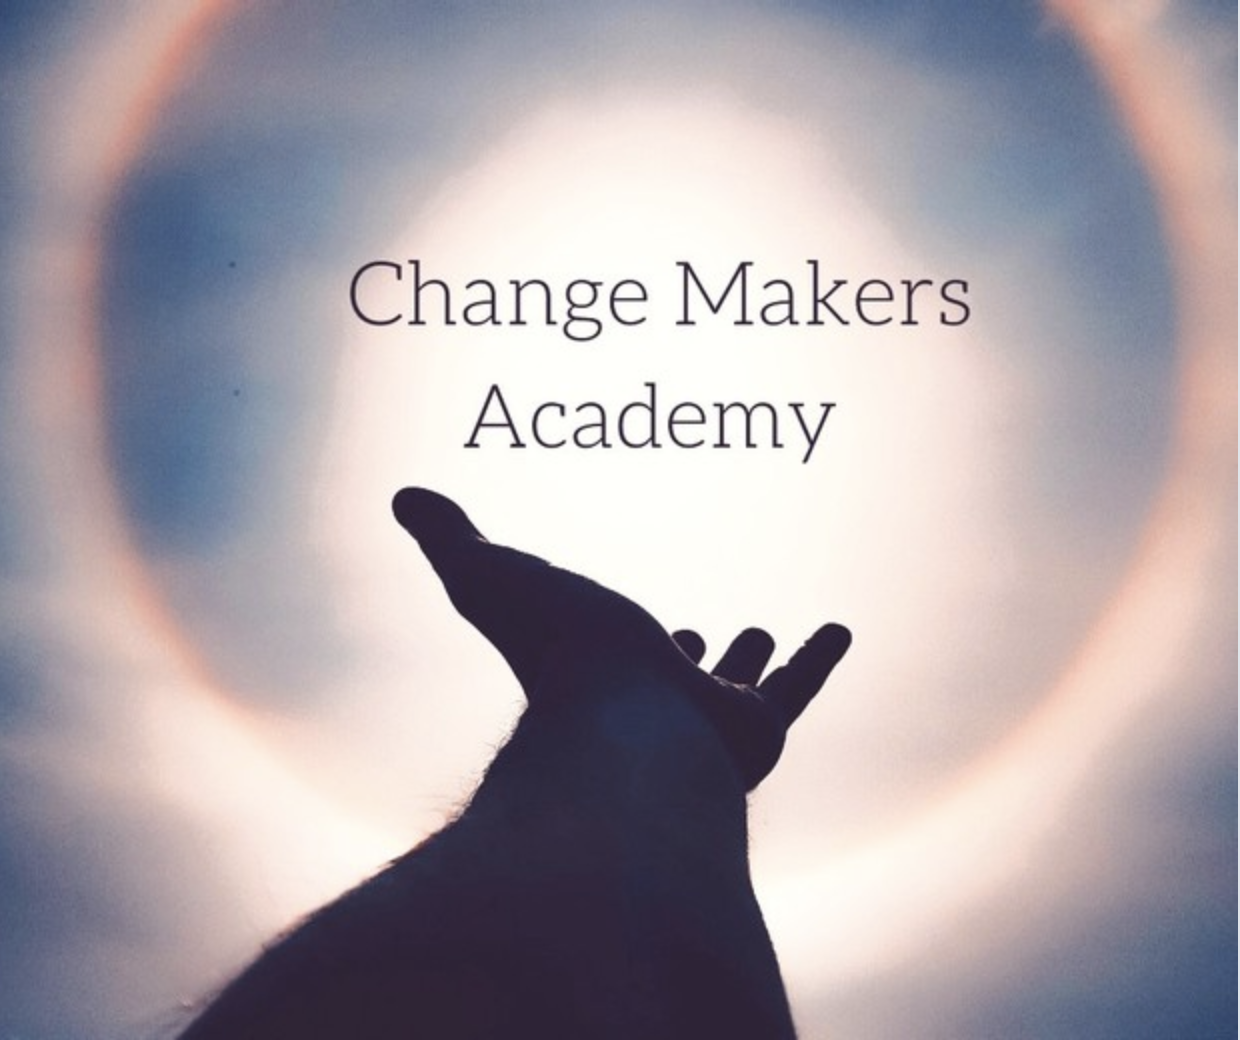 Change Makers Academy Sweden